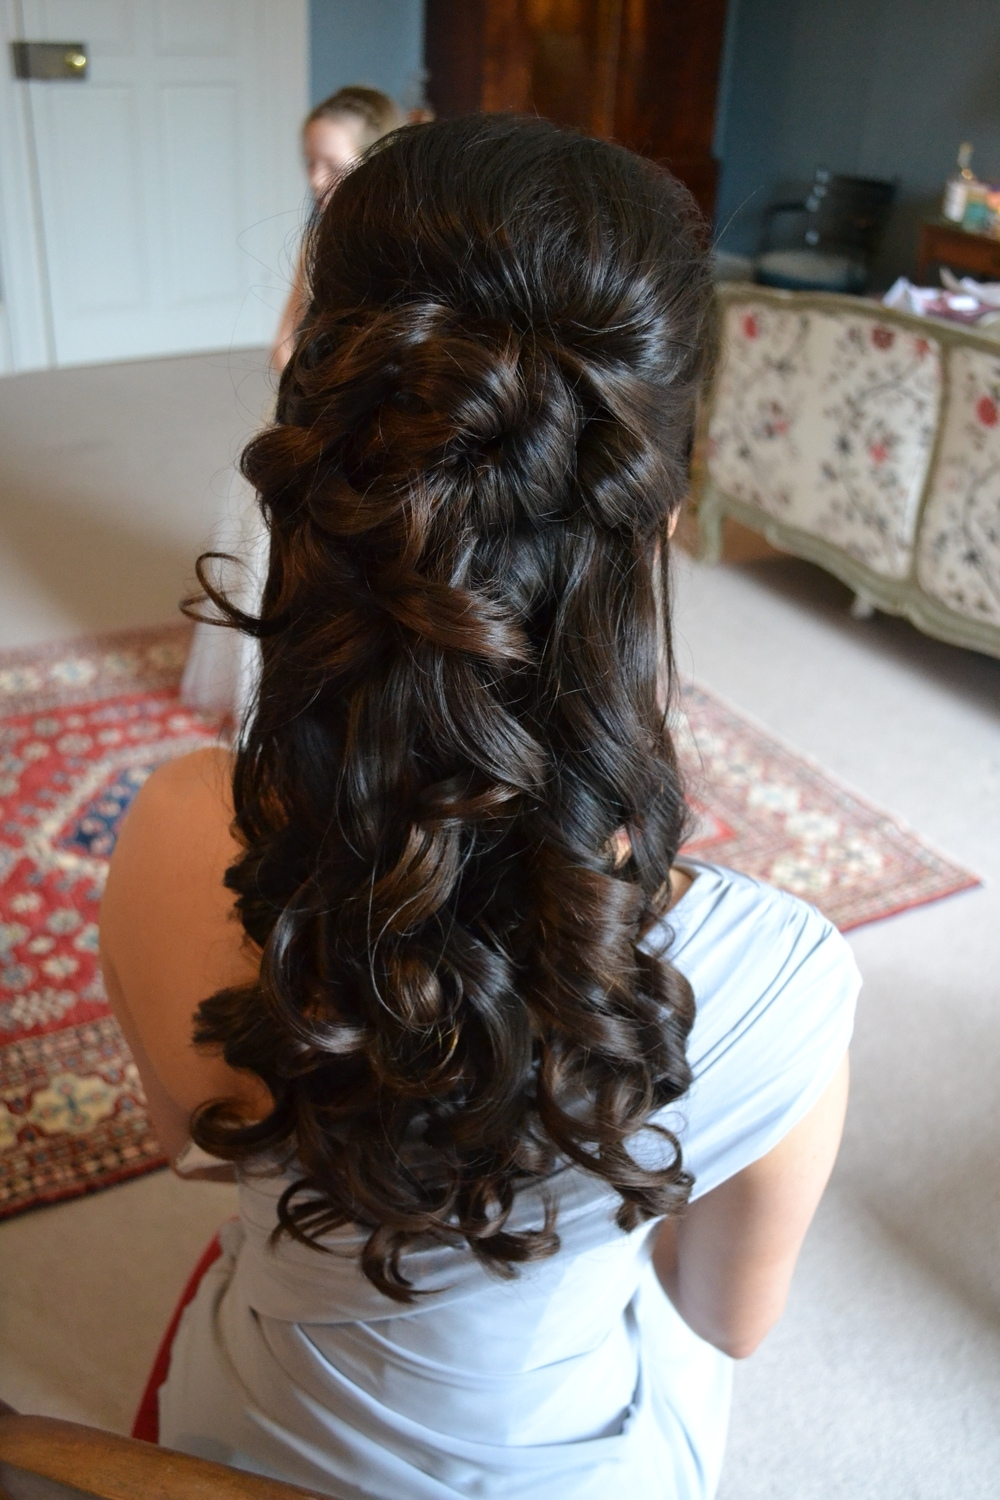 Trendy Beach Wedding Hairstyles For Long Curly Hair In Wedding Hairstyles Ideas: Curly Half Up Beach Wedding Hairstyles On (View 11 of 15)